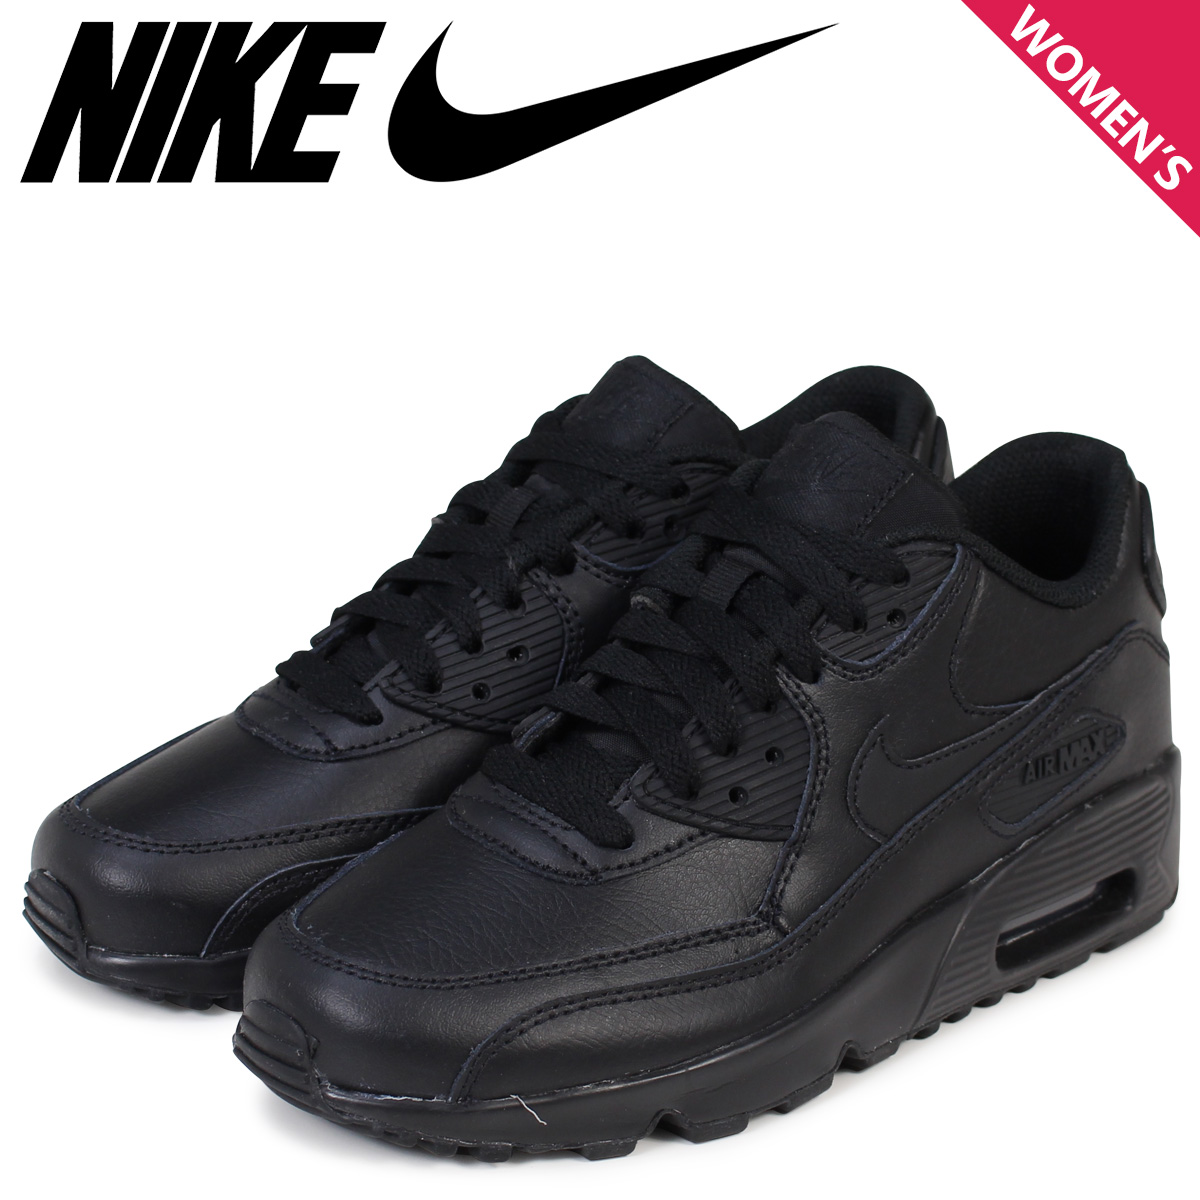 Sugar Online Shop  Nike Air Max Womens NIKE sneakers AIR MAX 90 LTR GS Air  Max 833412-001 shoes black  book product 11   26 days in stock new stock  plan  ... 442d77eb41